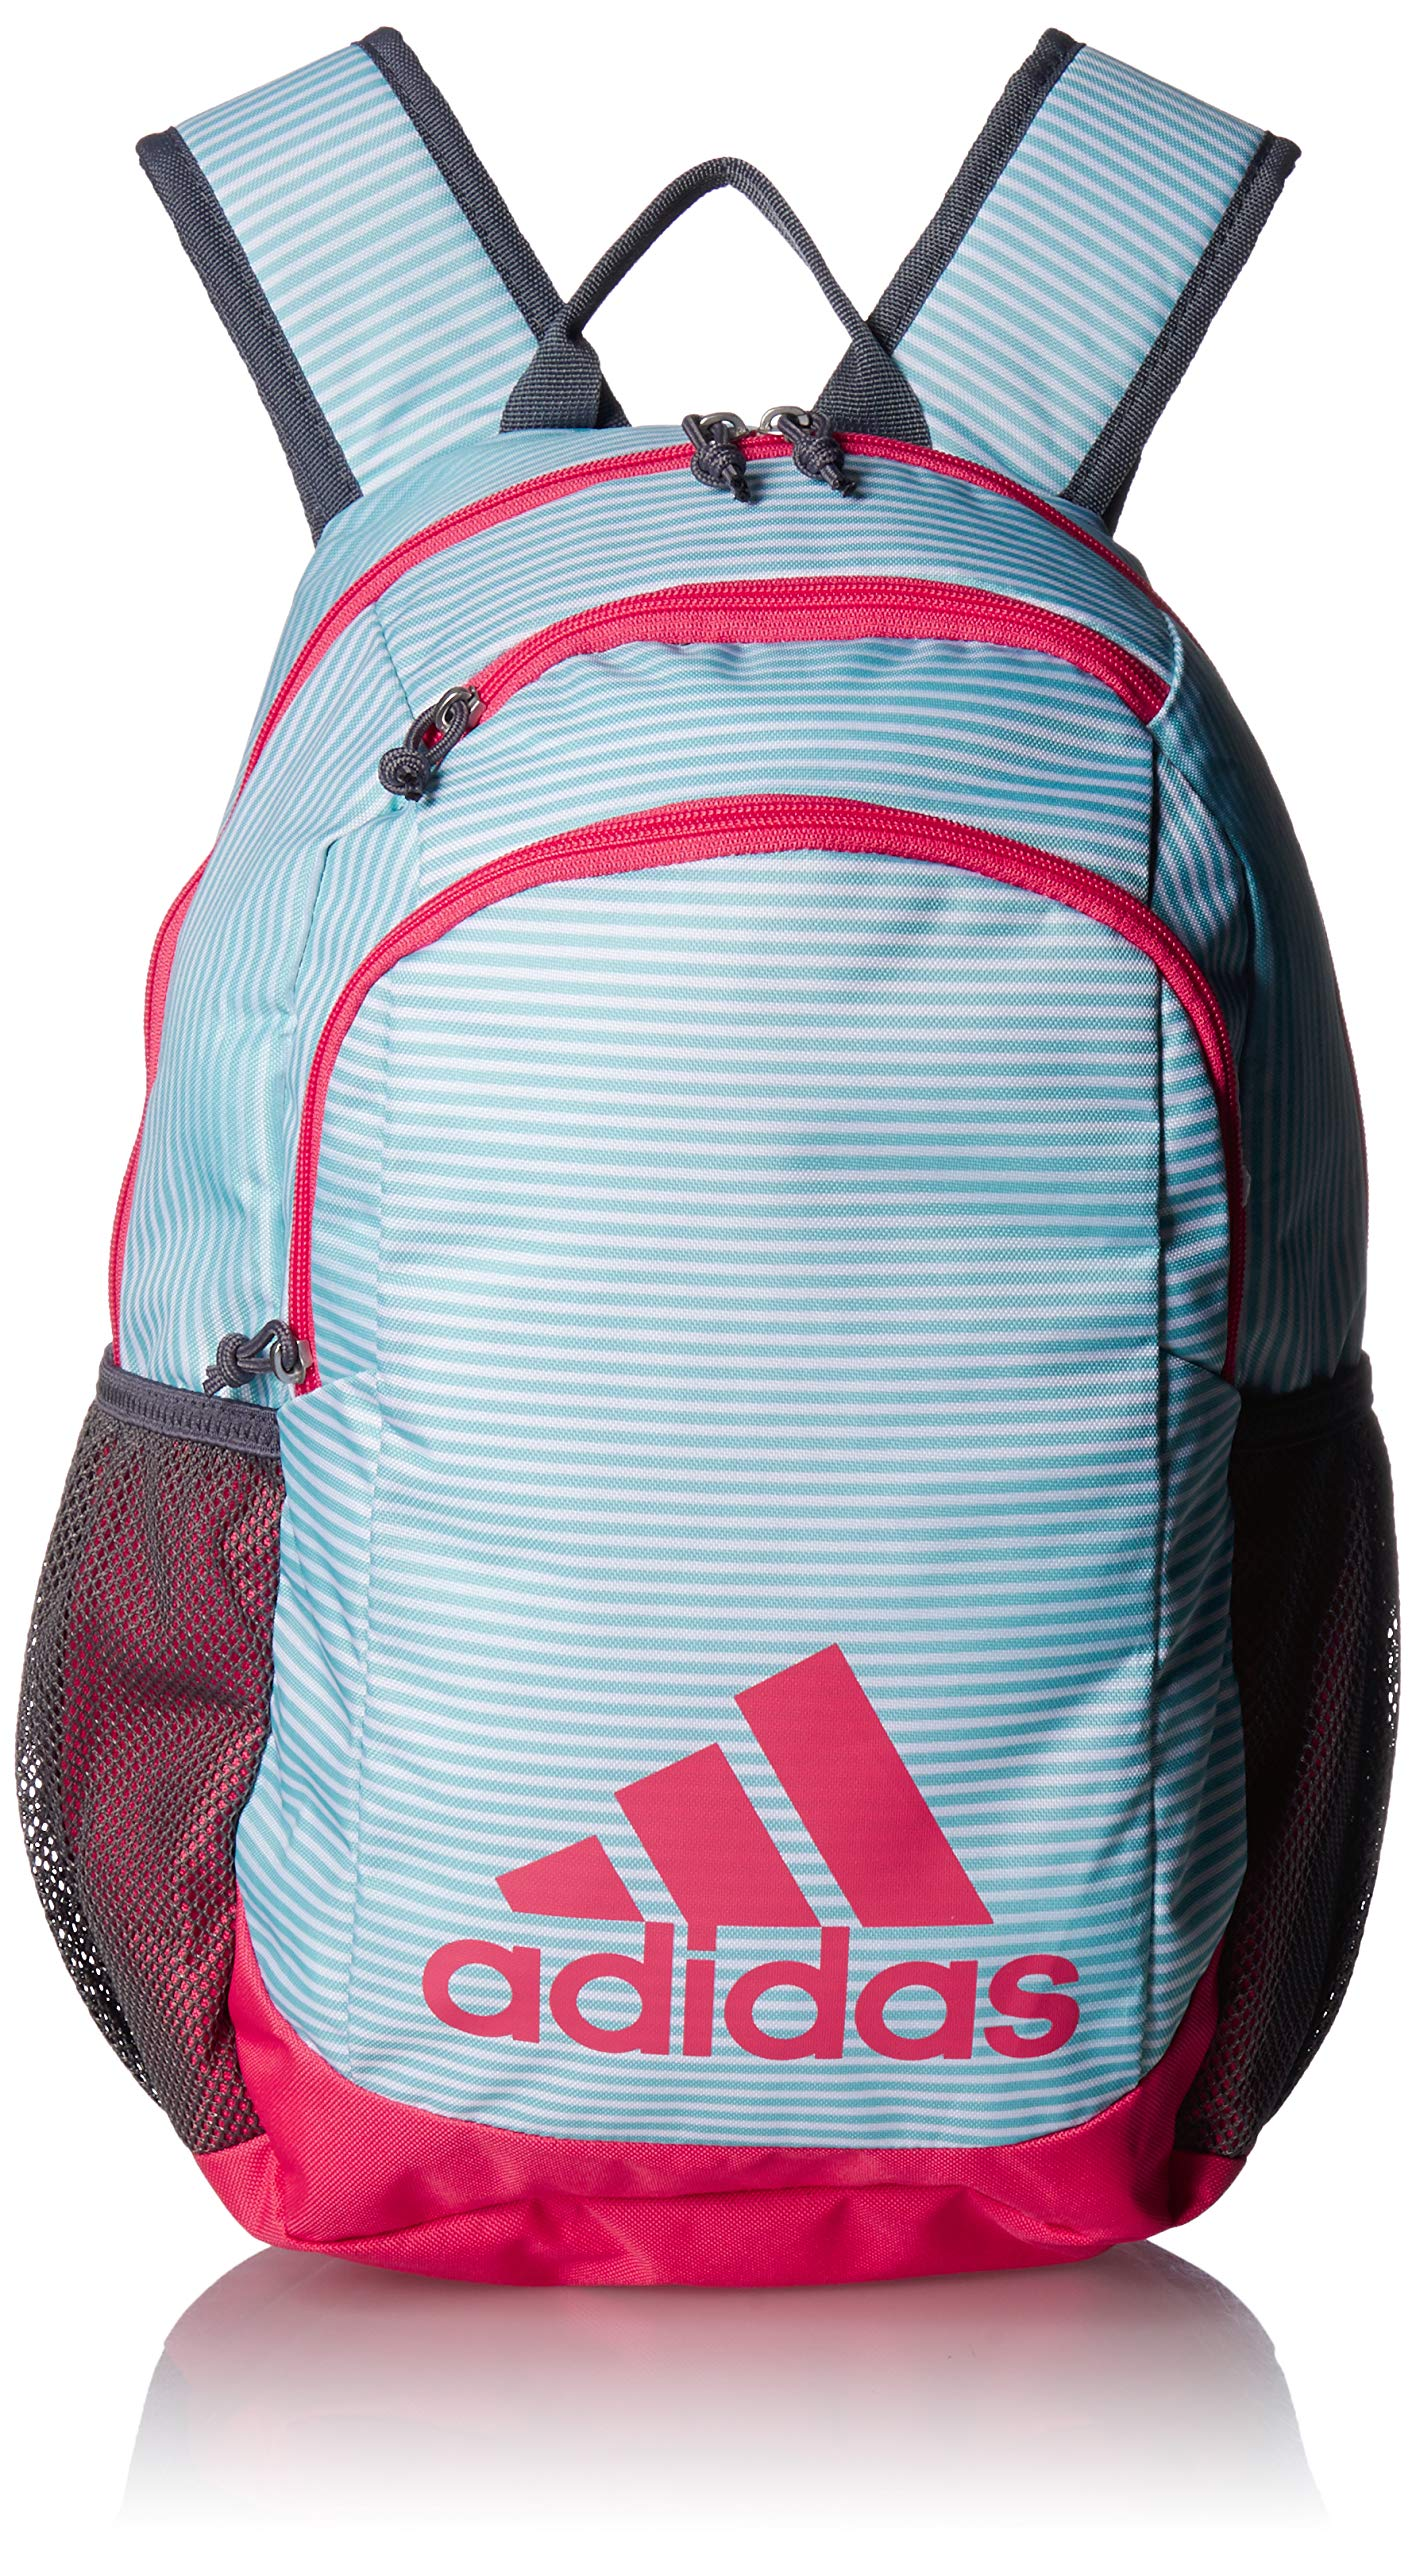 adidas Youth Kids-Boy's/Girl's Young Creator Backpack, Clear Aqua Sundown/Real Pink/Onix, 0 by adidas